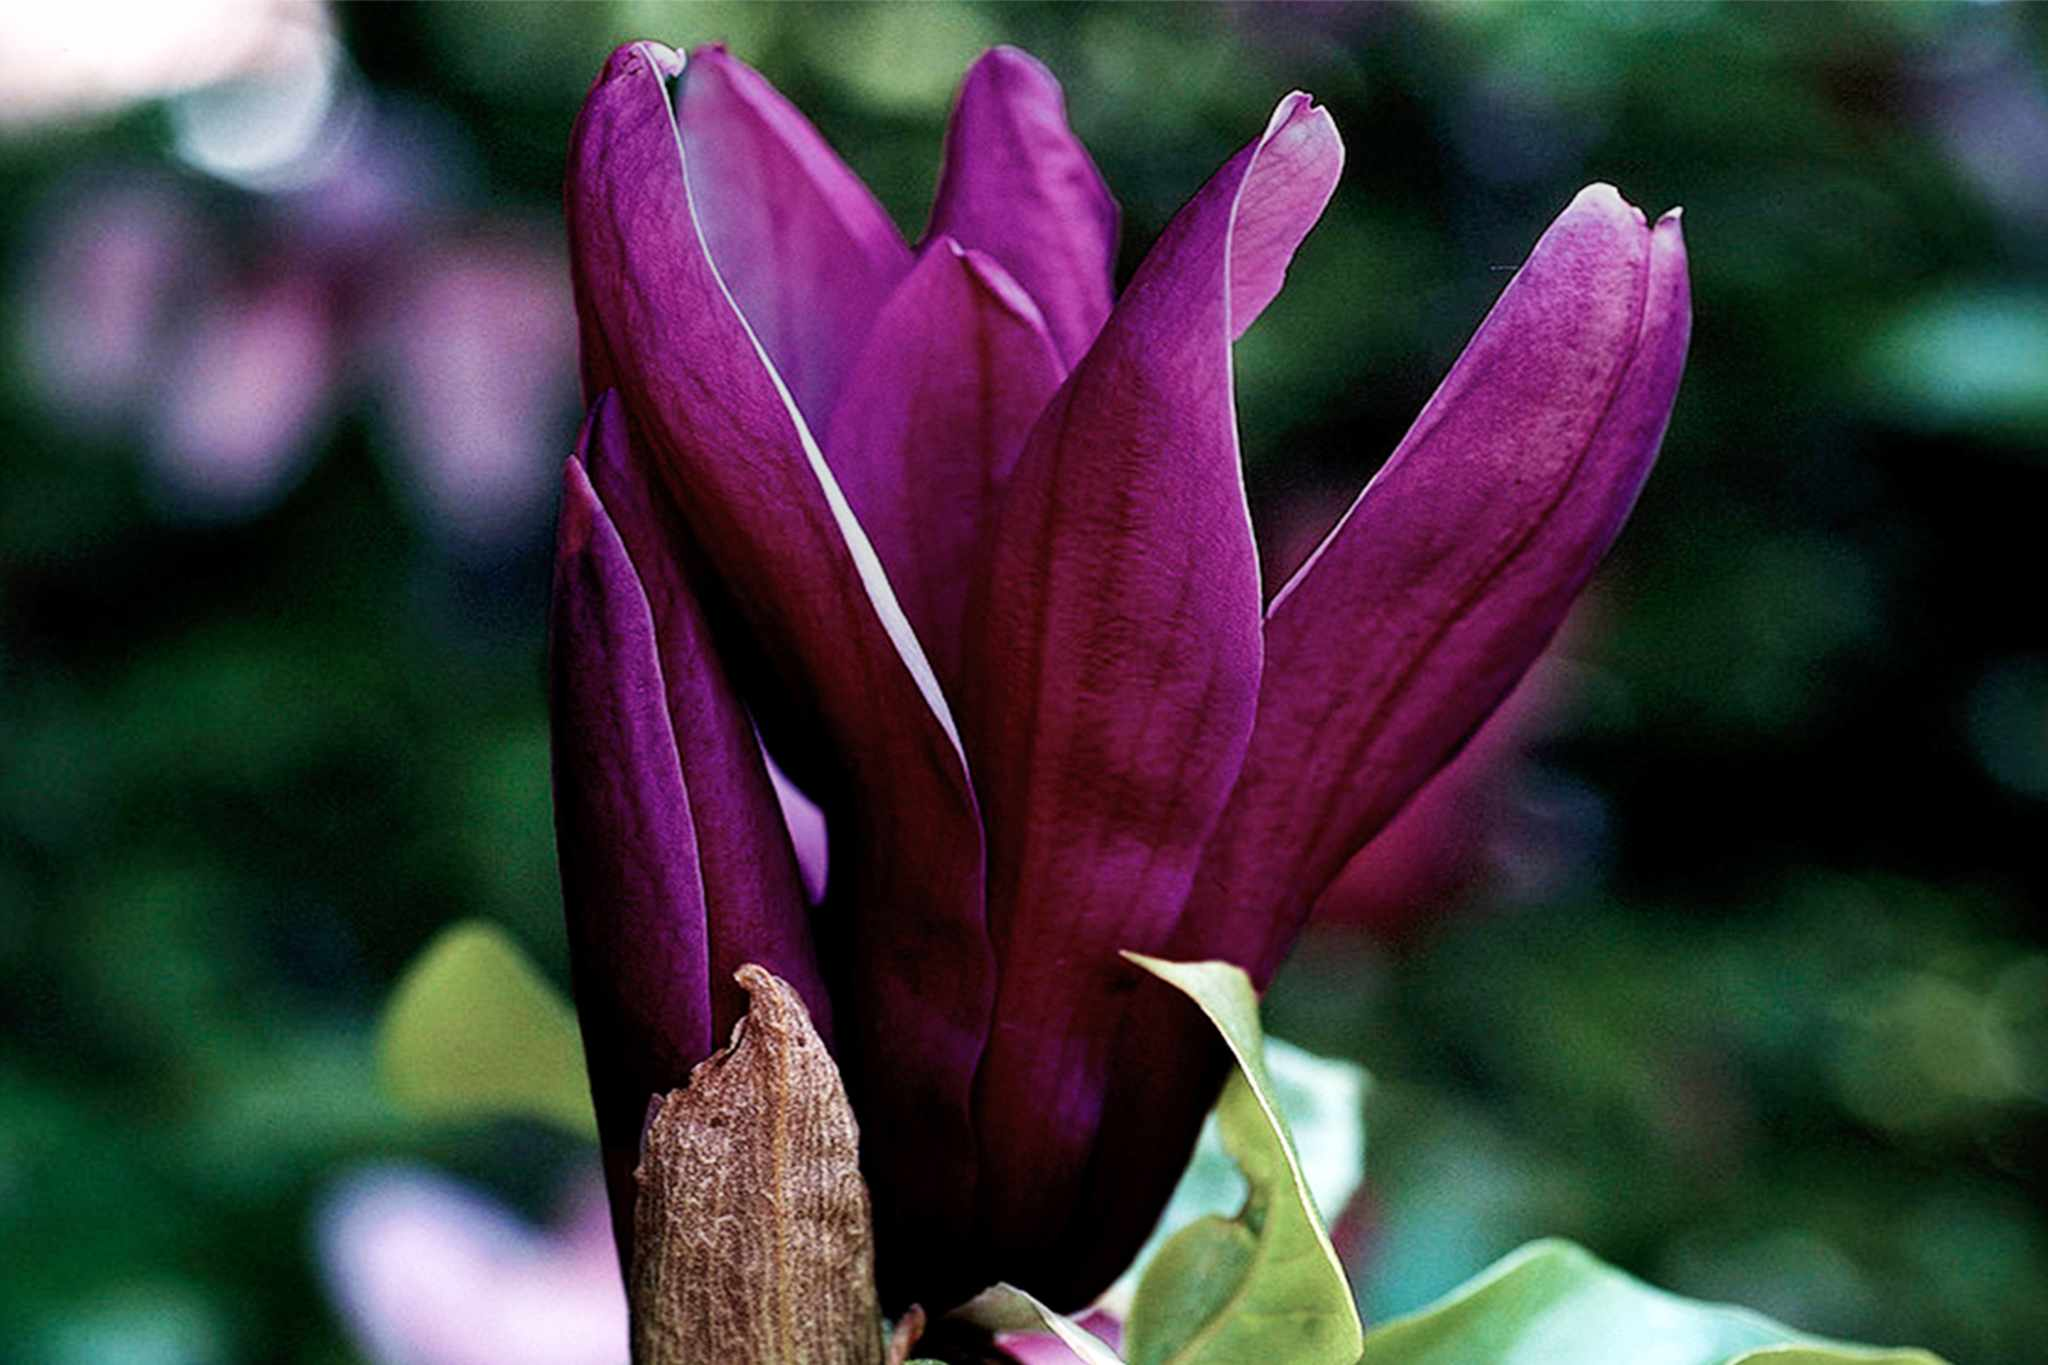 blooming-direct-magnolia-black-beauty_v3-2048-1365